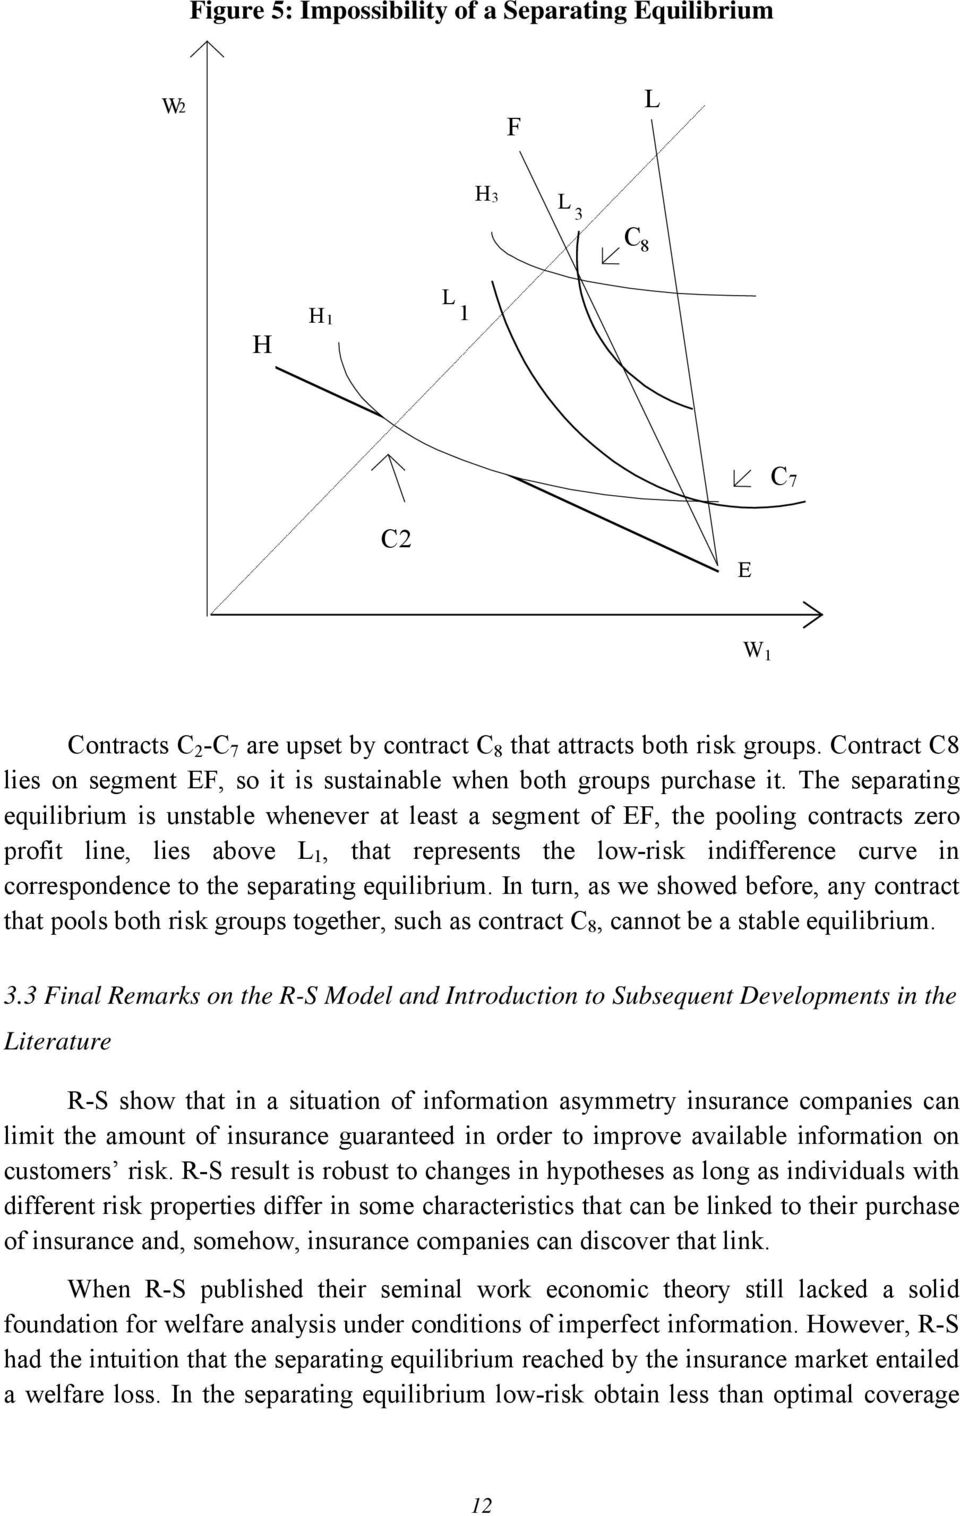 The separating equilibrium is unstable whenever at least a segment of EF, the pooling contracts zero profit line, lies above L 1, that represents the low-risk indifference curve in correspondence to